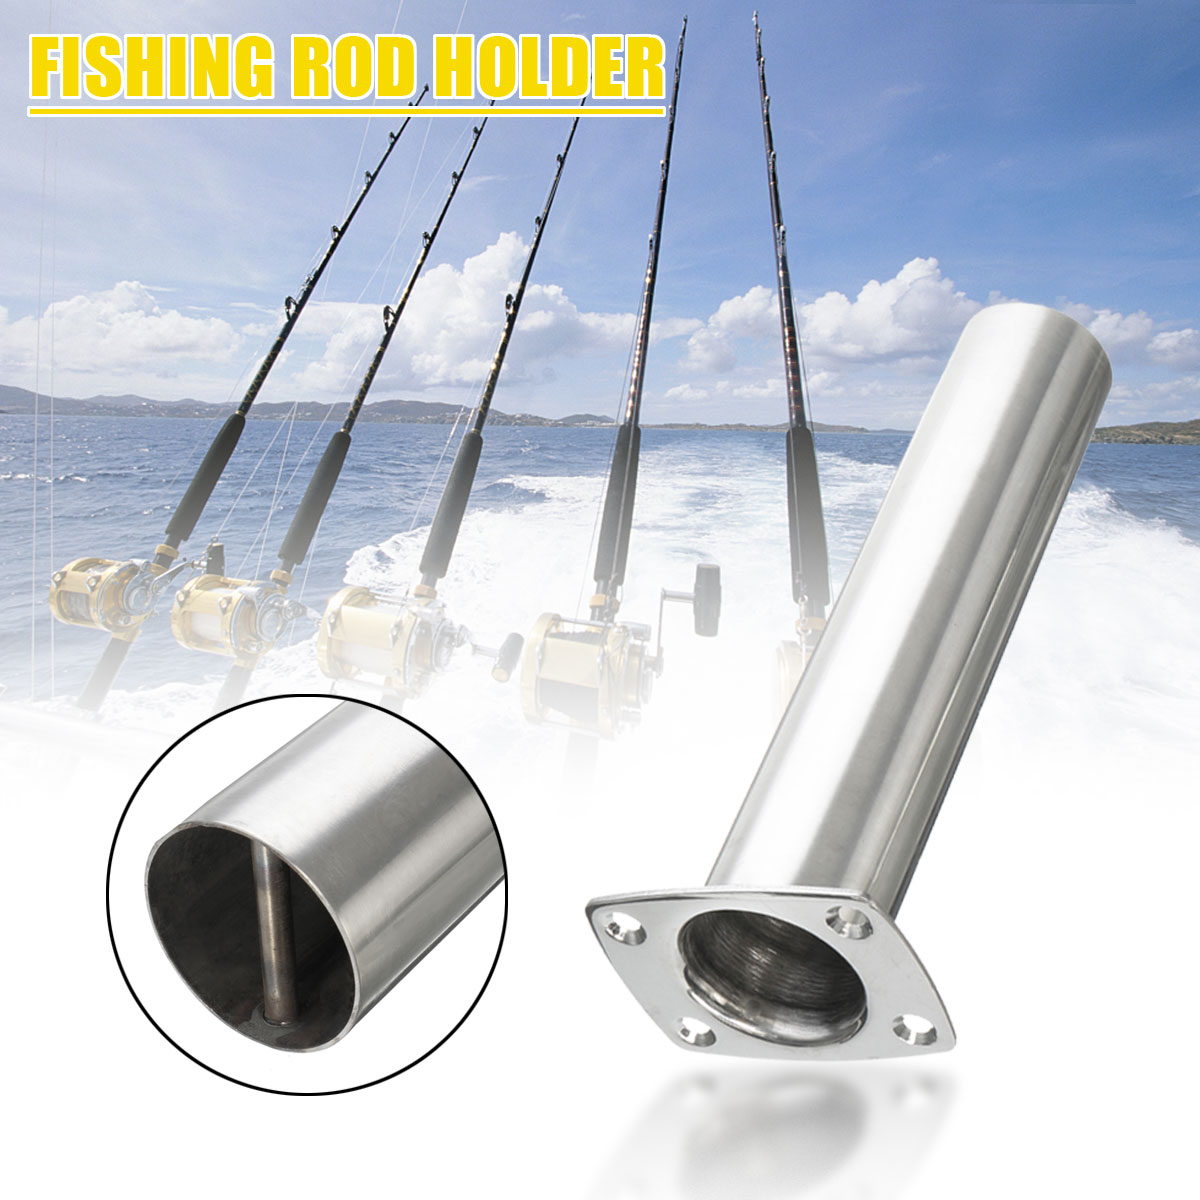 316 Stainless Steel Fishing Rod Pole Holder Flush Mount Polished 30 Degree 90 Degree Fishing Rod Holders For Marine Boat Yacht